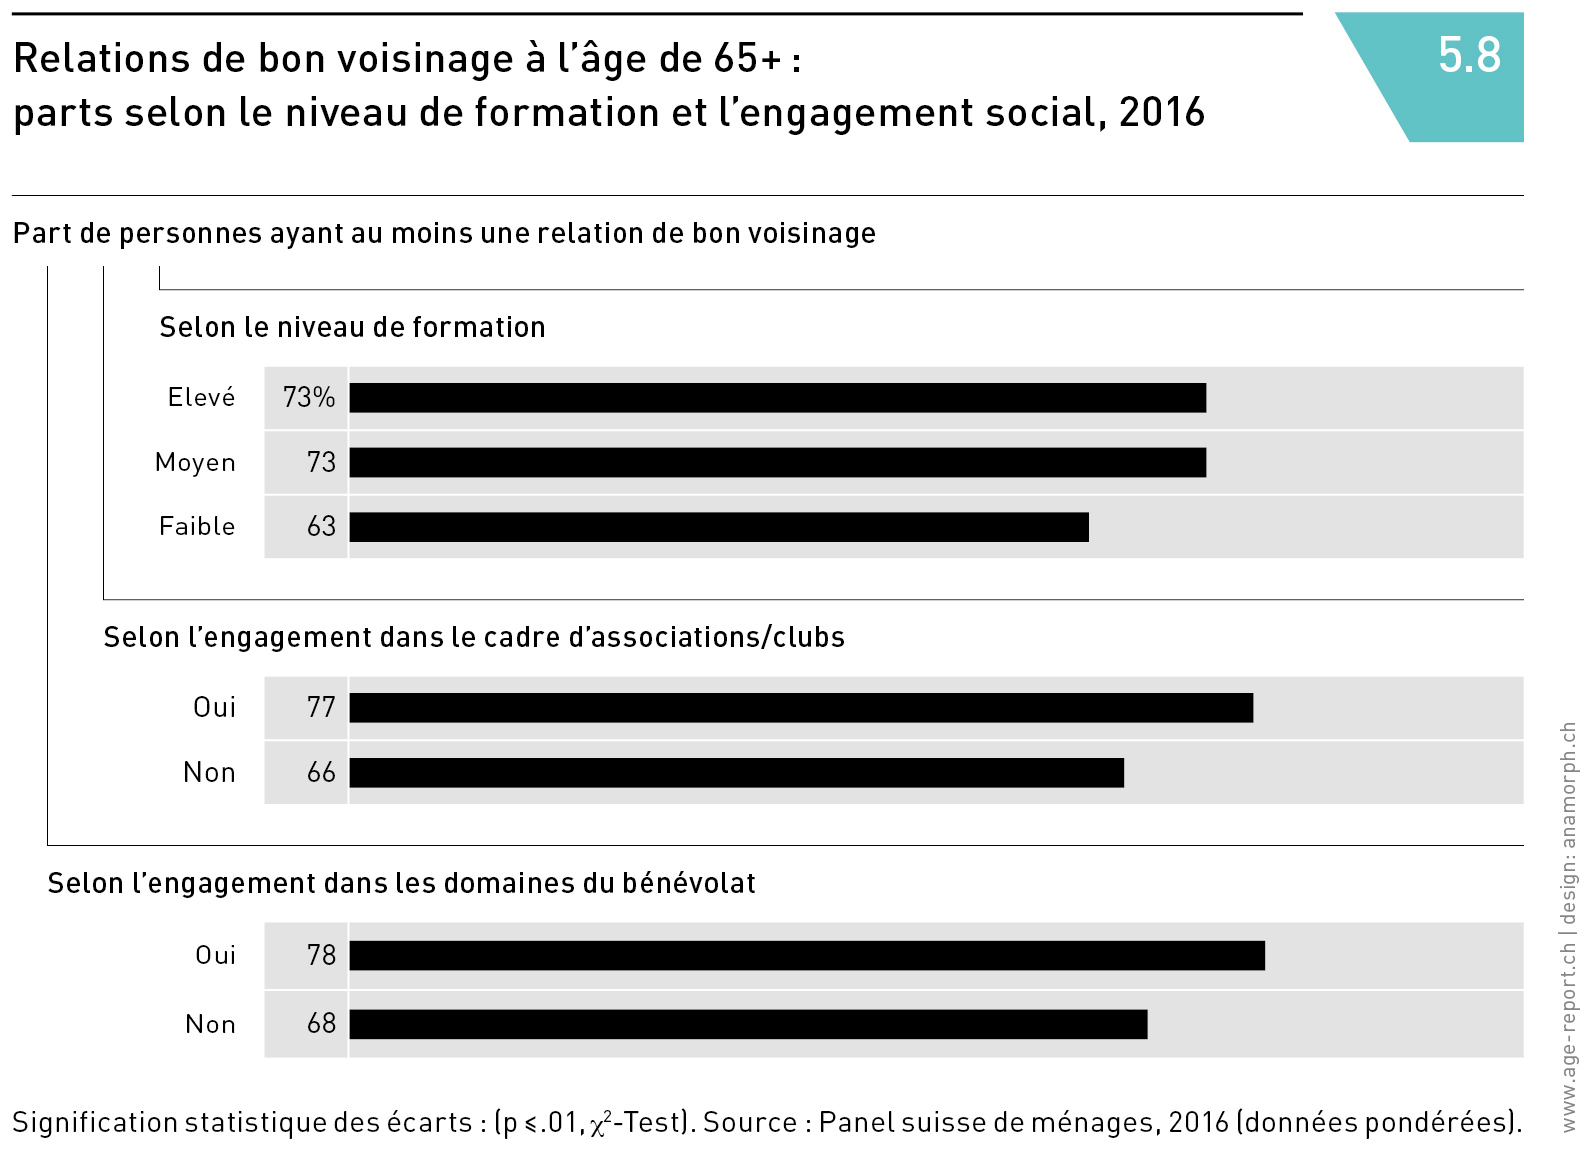 Relations de bon voisinage à l'âge de 65+ : parts selon le niveau de formation et l'engagement social, 2016